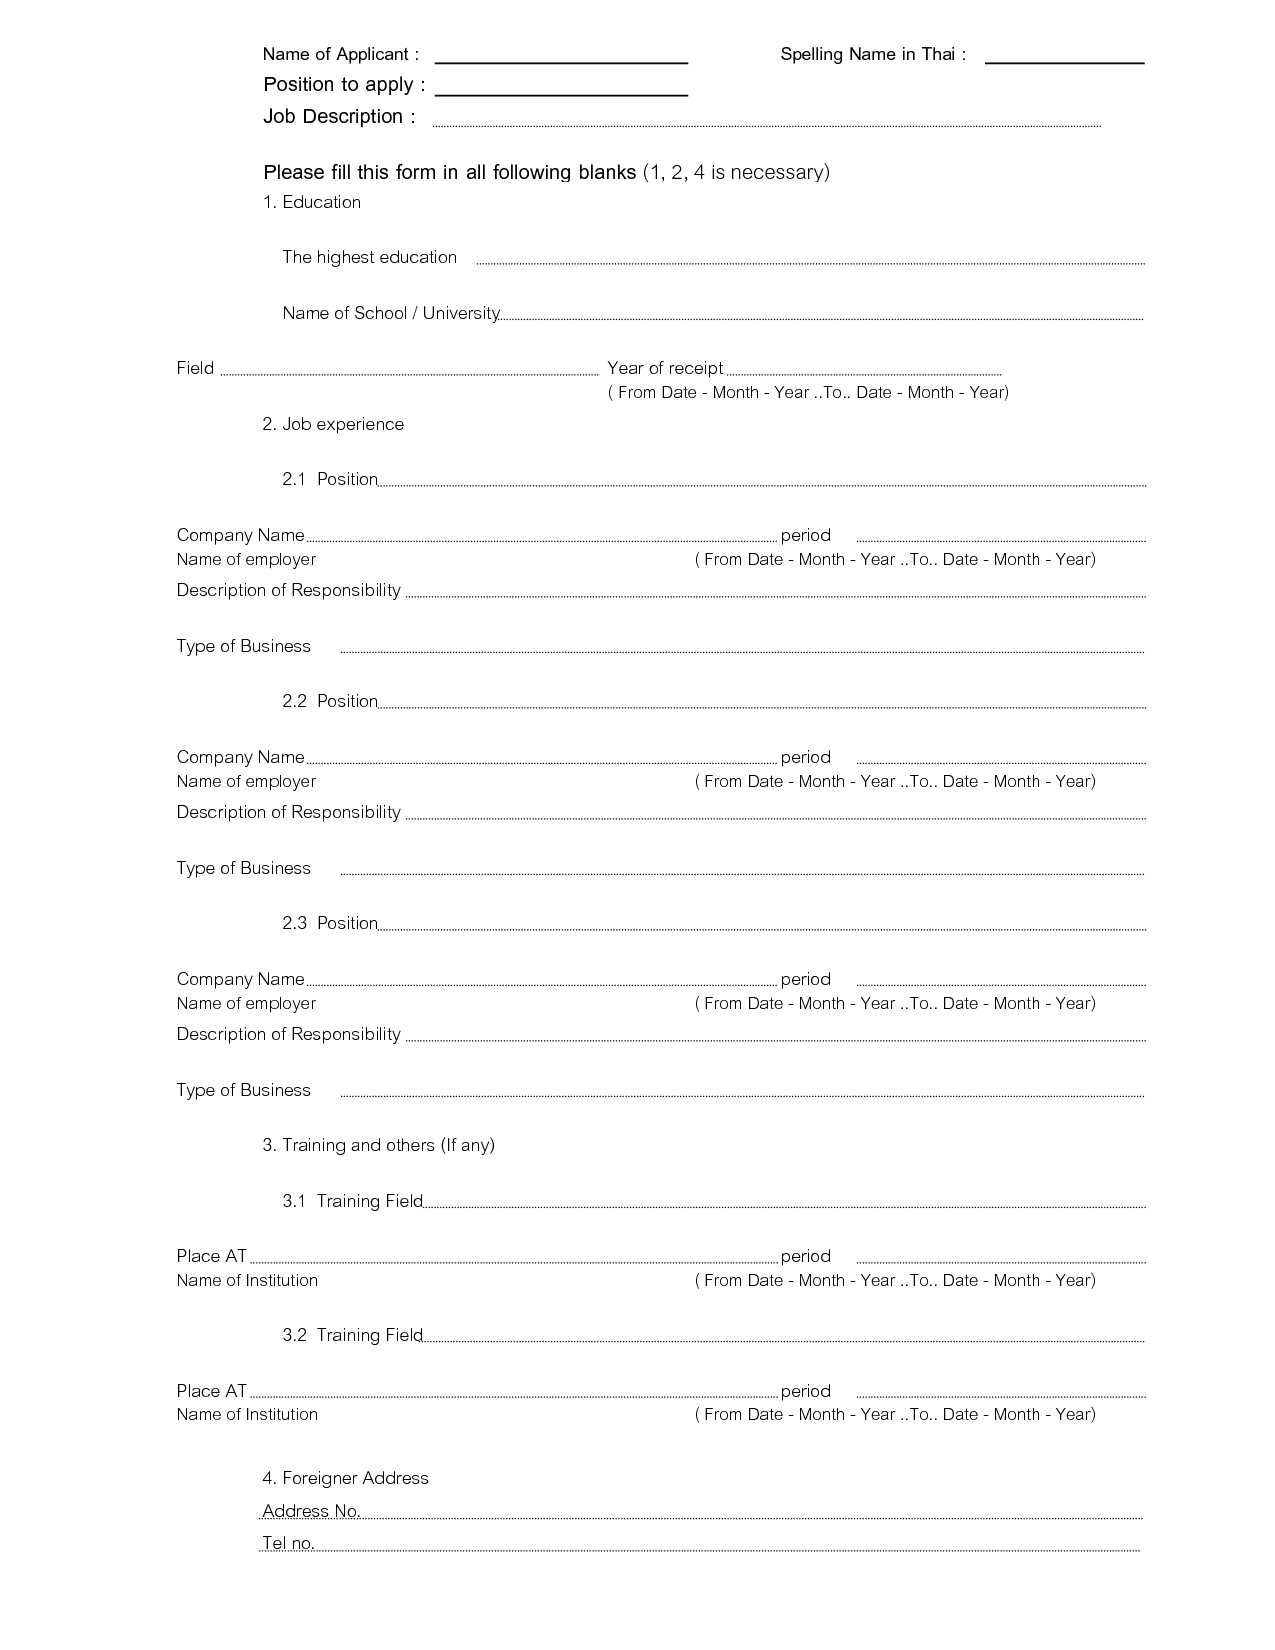 free printable fill in the blank resume template vatoz::Printable Resume CV Templates & Format Sample